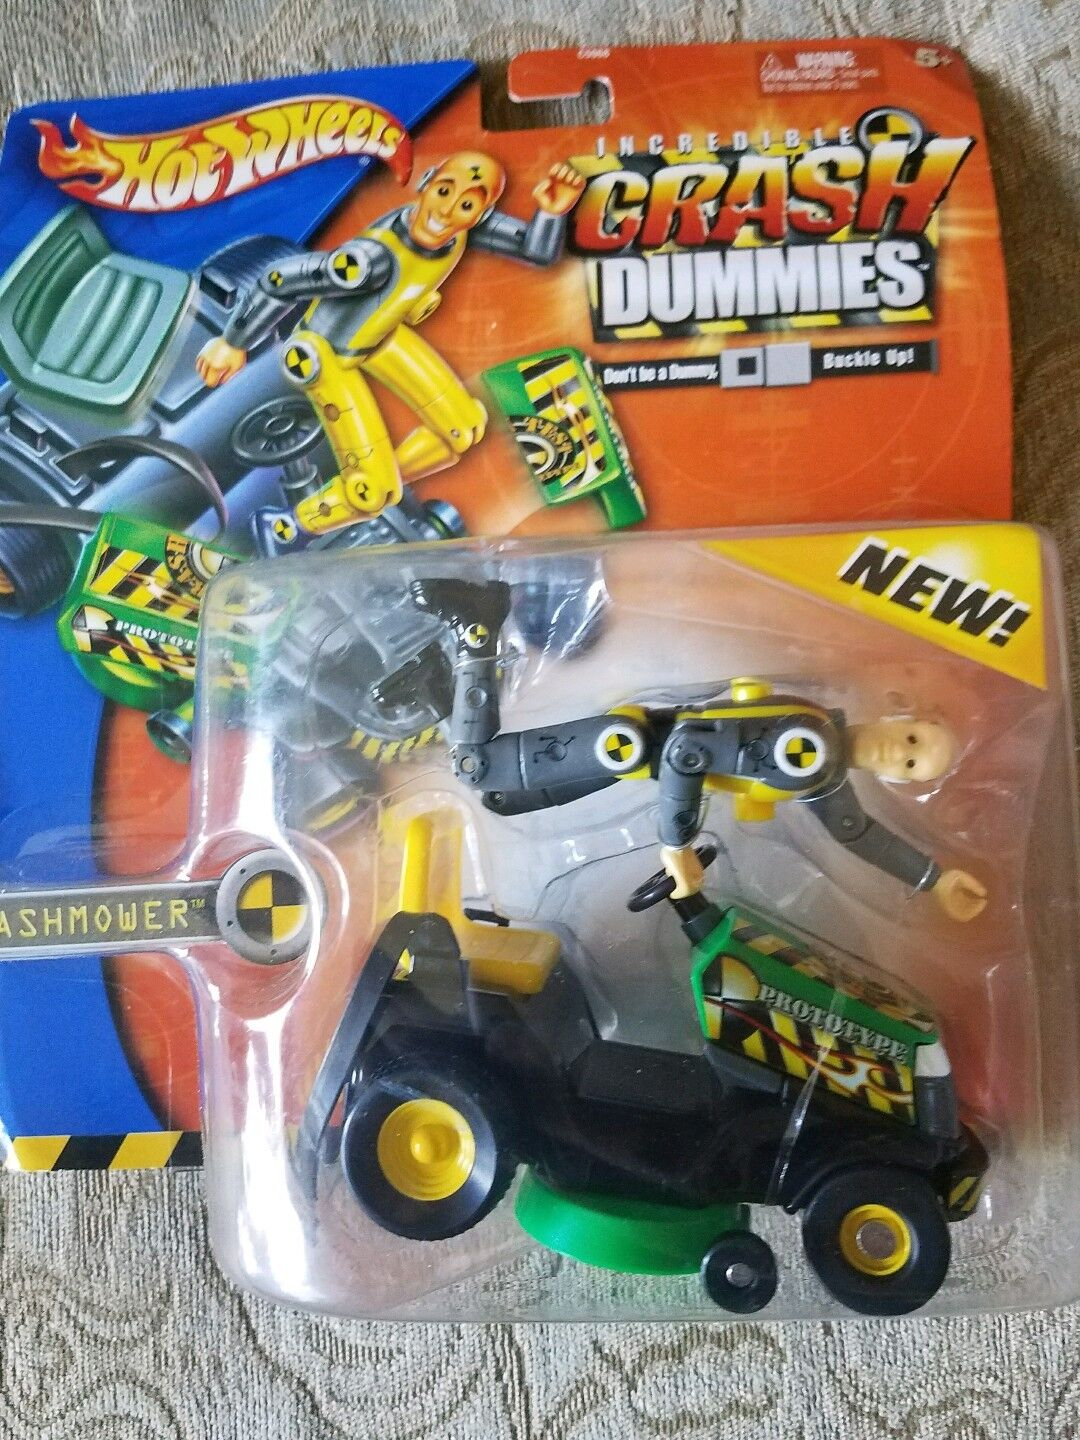 RARE HOT WHEELS CRASH DUMMIES CRASH MOWER, NIB